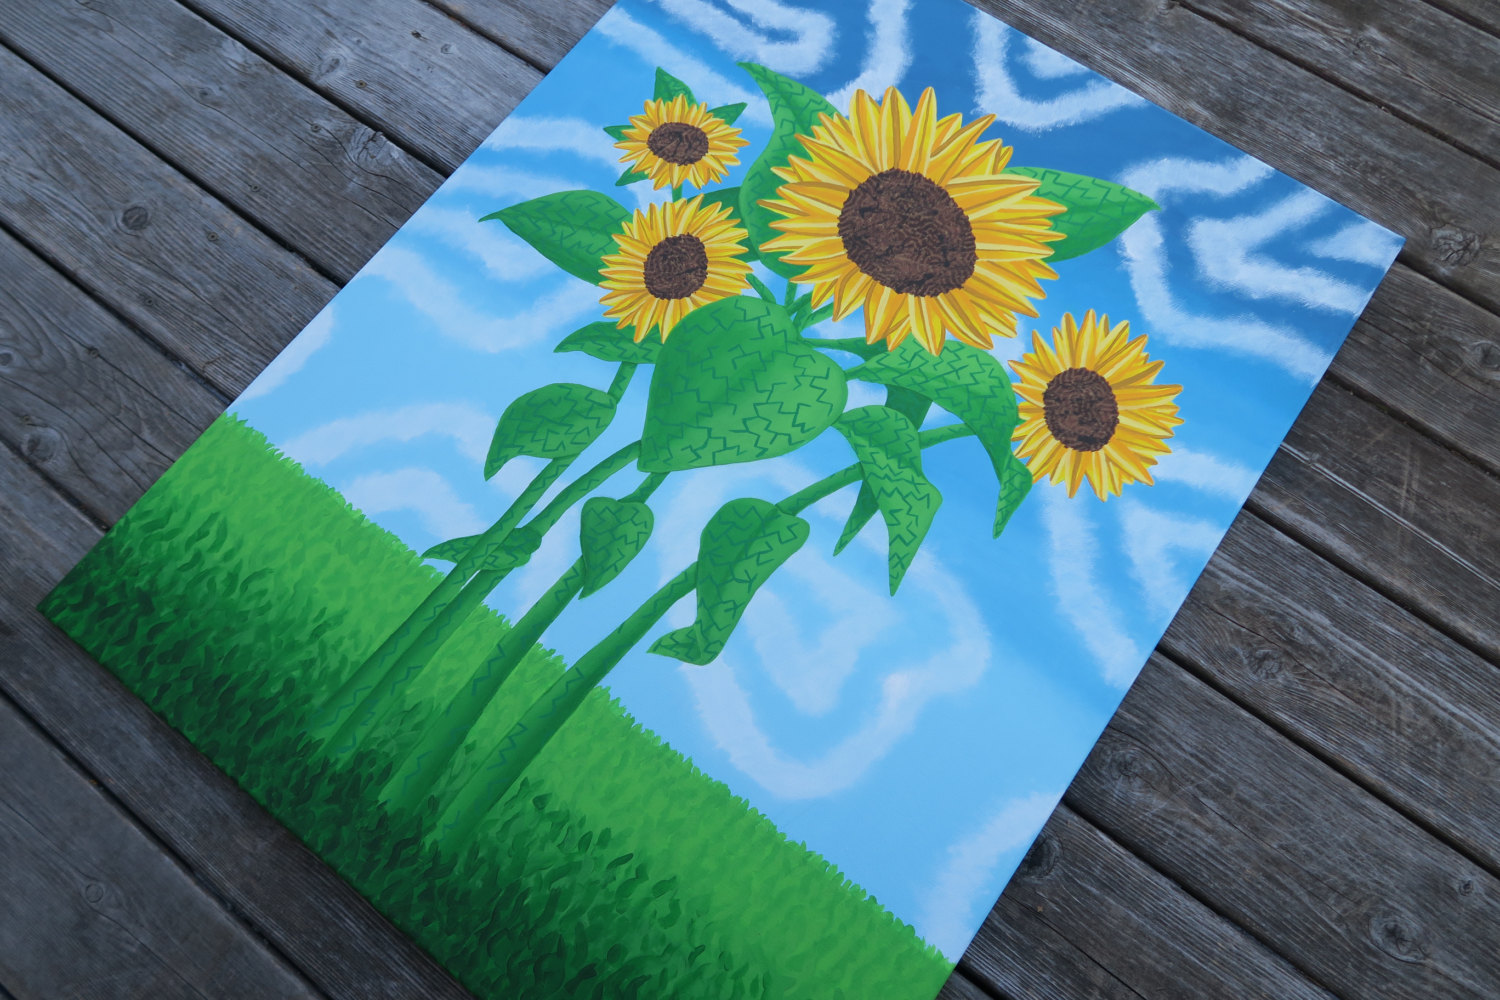 Triipy clipart sunflower Trippy Painted Surreal  Sunflower